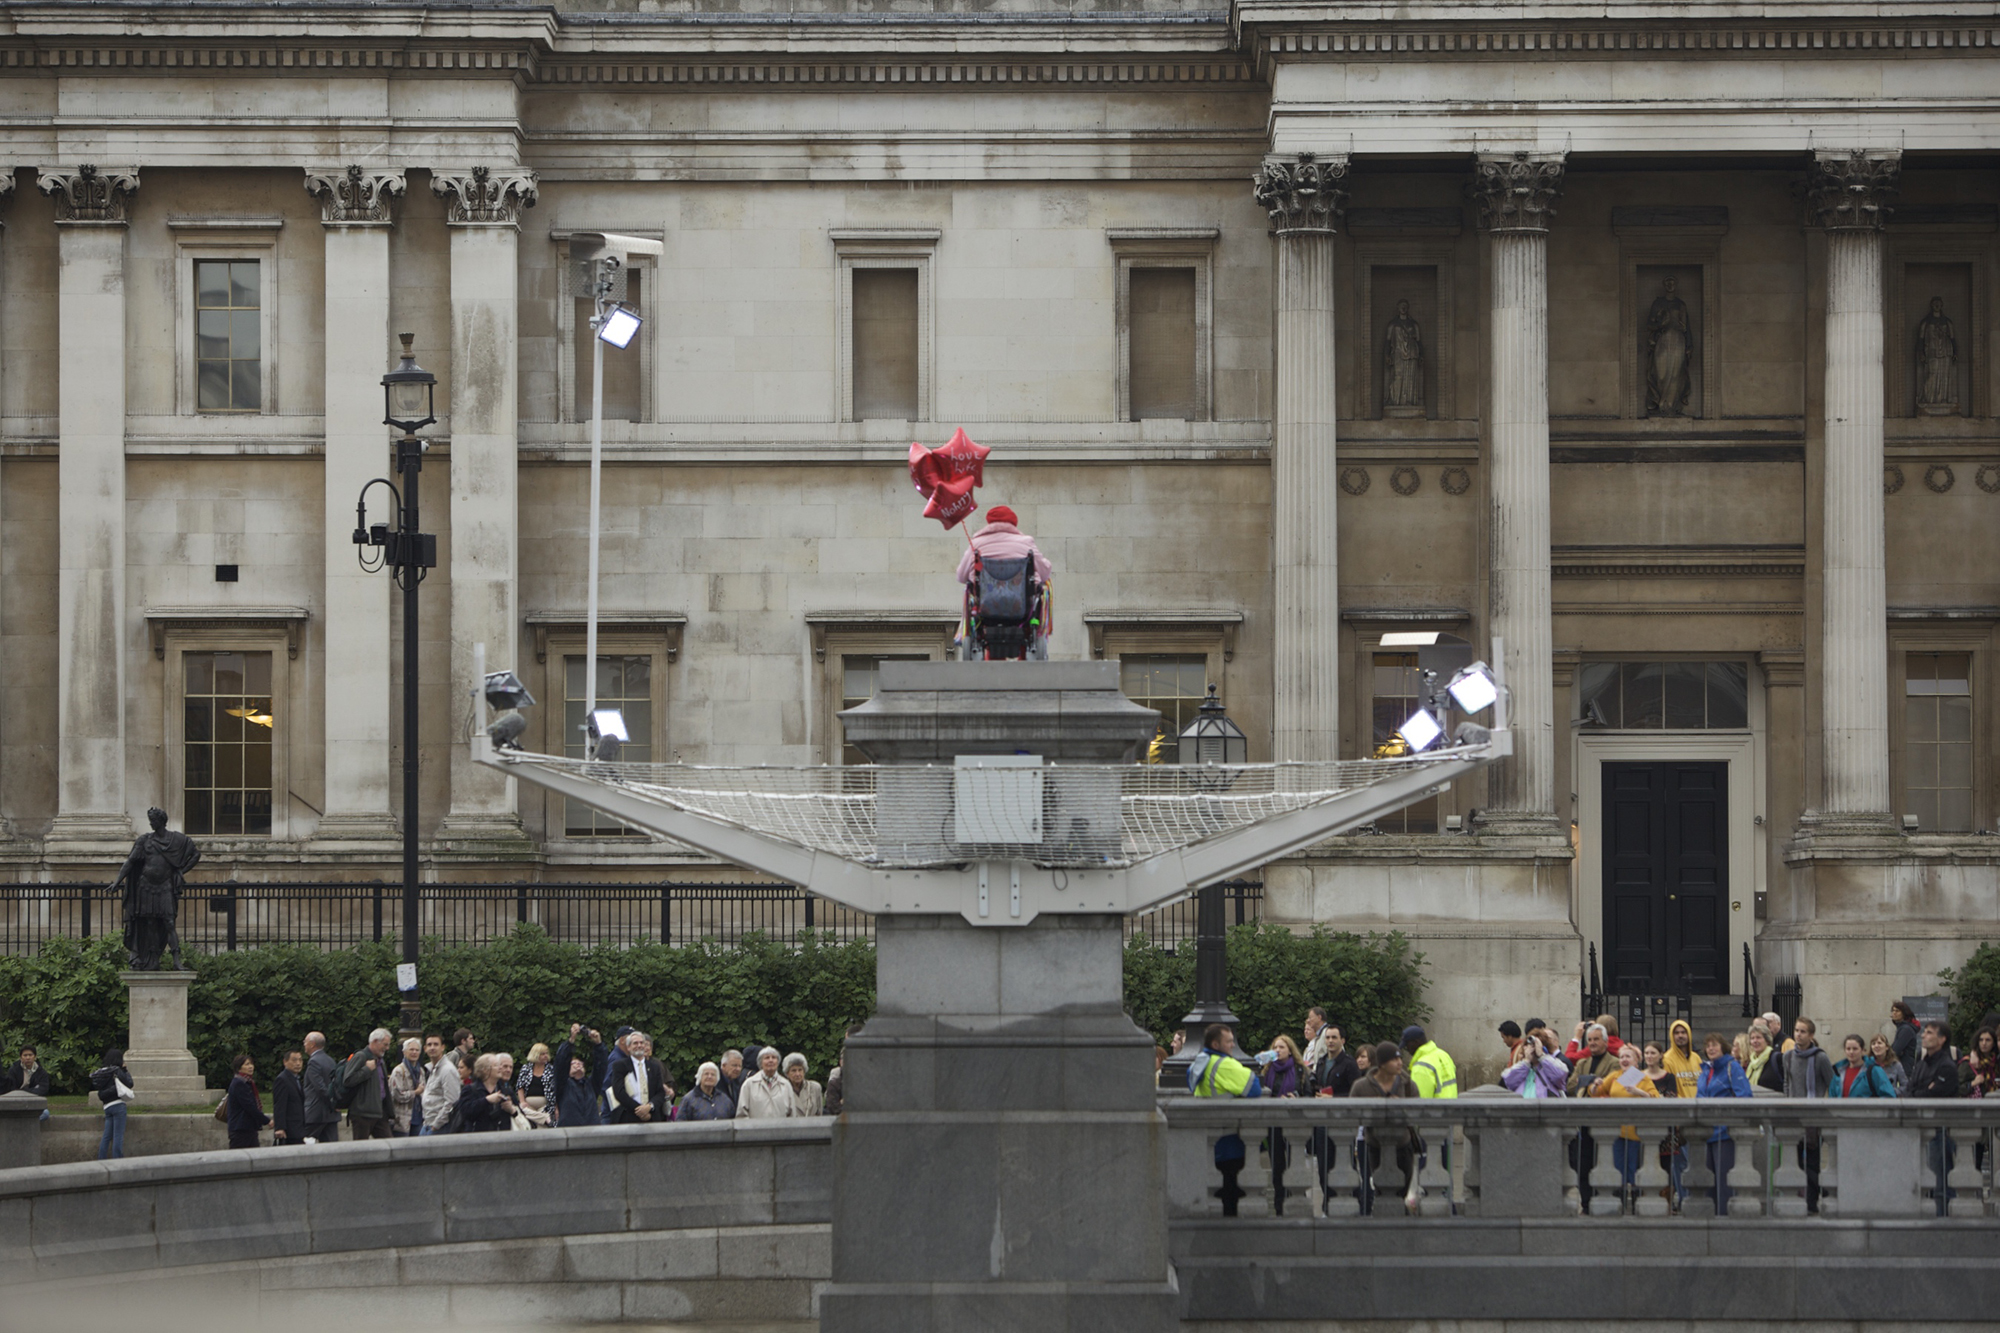 Woman with heart shaped balloon in wheel chair on the Fourth Plinth.